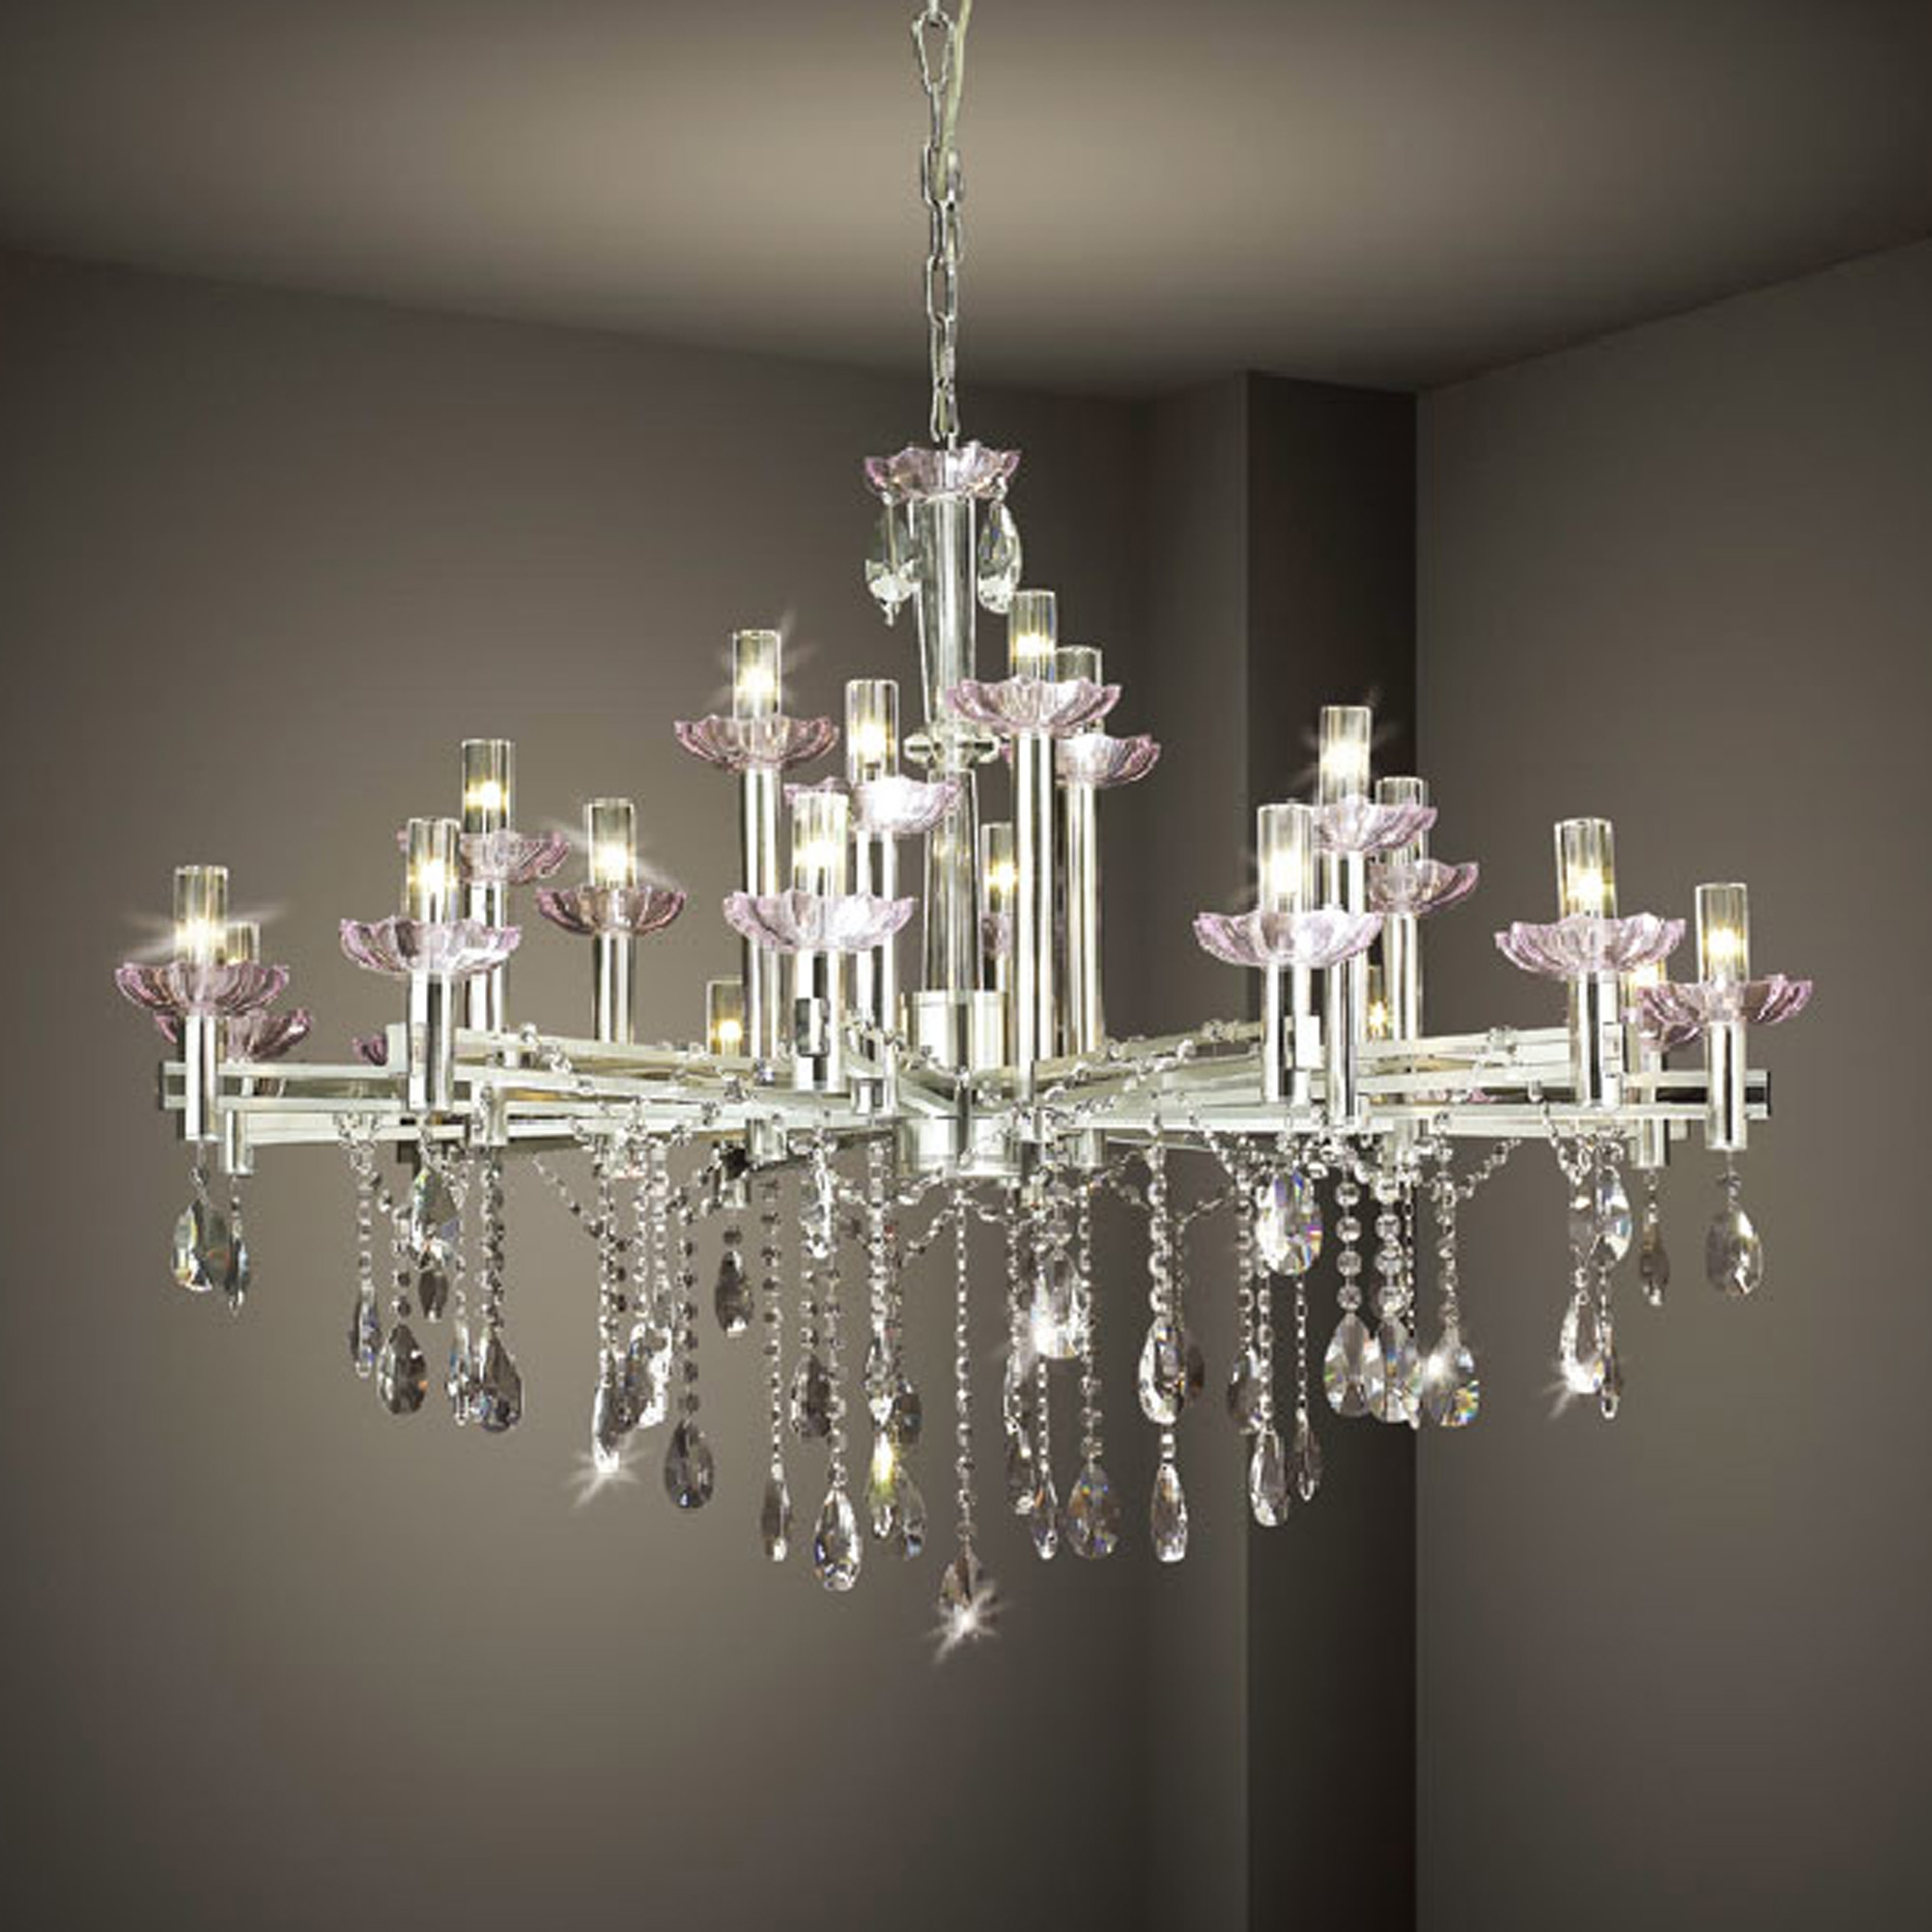 Chandelier Inspiring White Modern Chandelier Large Contemporary Within Modern Chandeliers (Image 6 of 15)